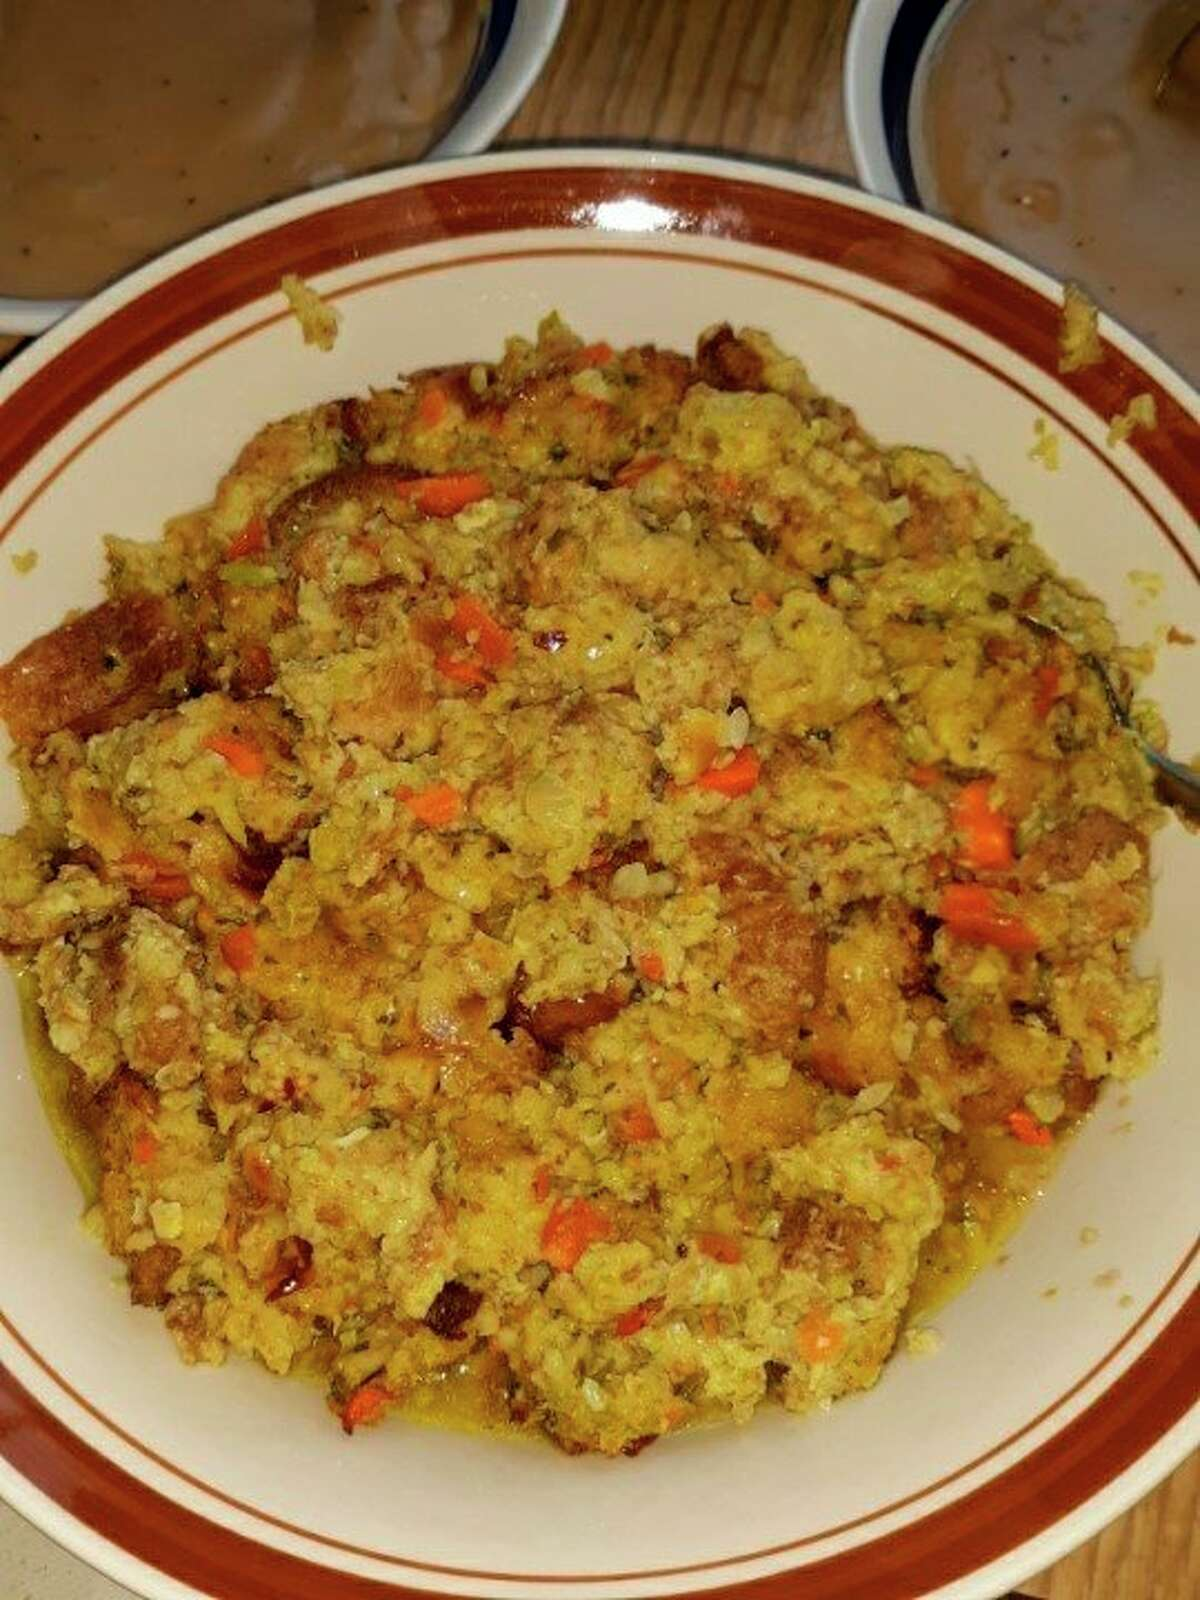 Lovina likes to serve this dressing as part of the Eicher Thanksgiving meal. (Courtesy photo)